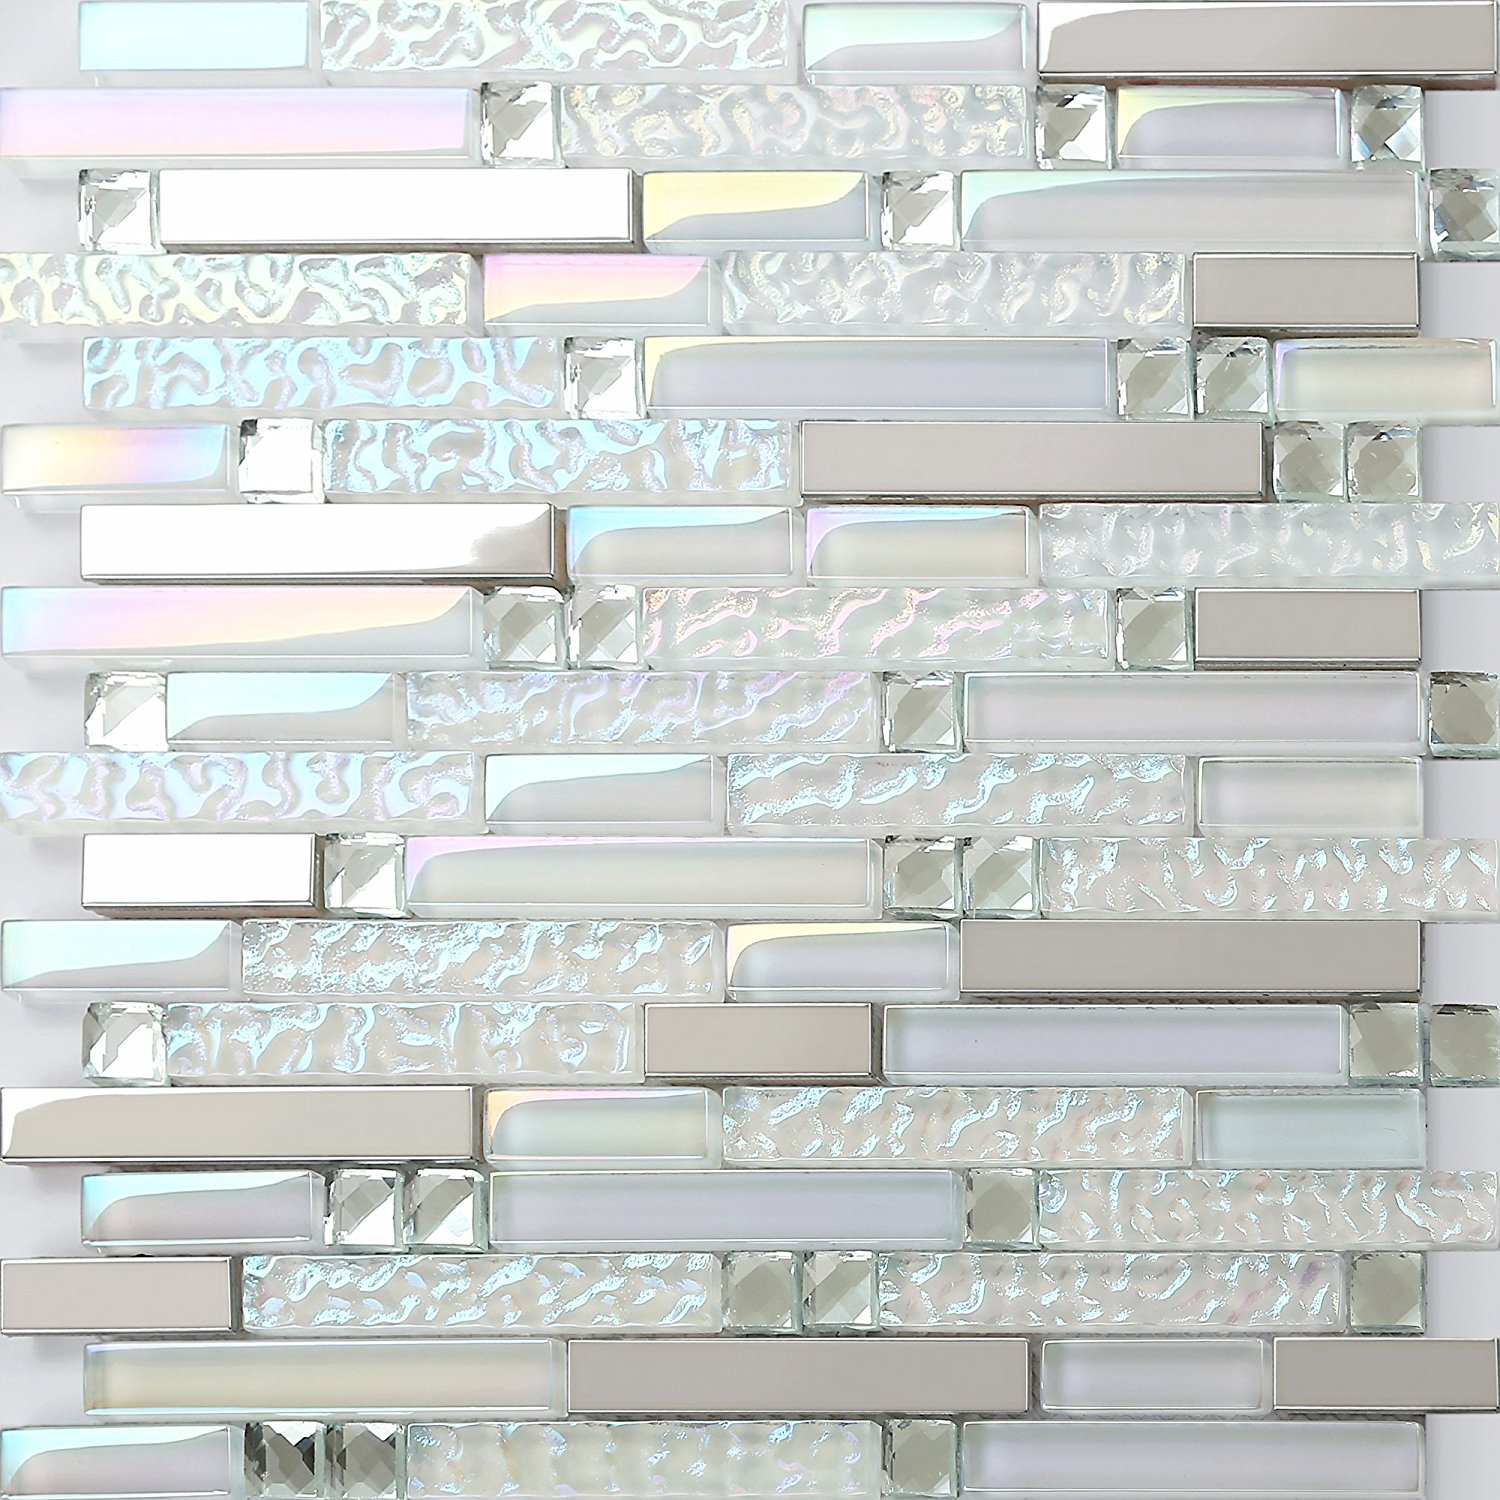 Iridescent glass diamond metal stainless steel mosaic tile backsplash Backsplash mosaic tile